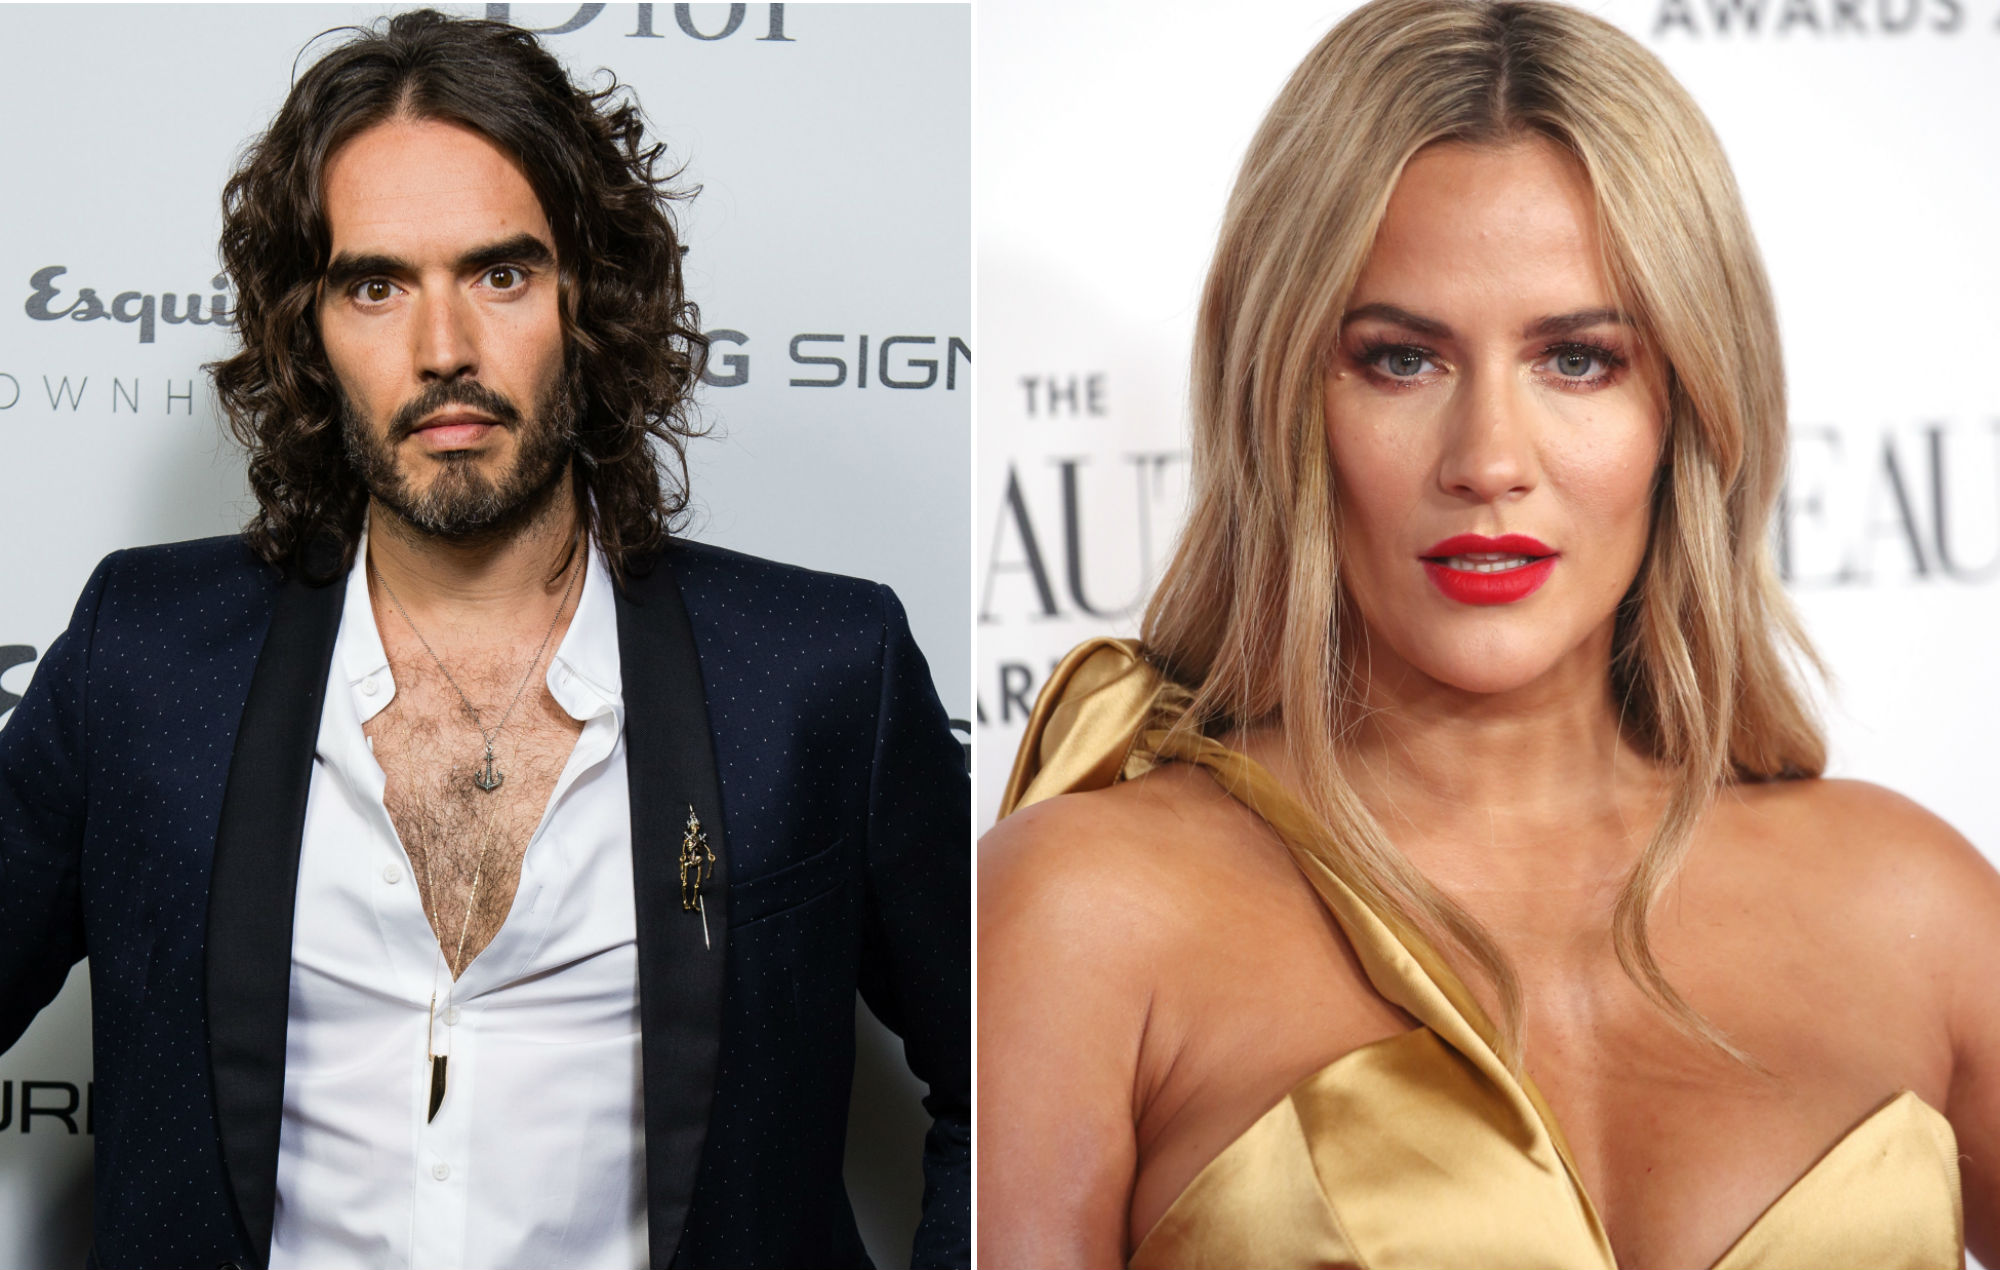 Russell Brand releases powerful statement on Caroline Flack's death